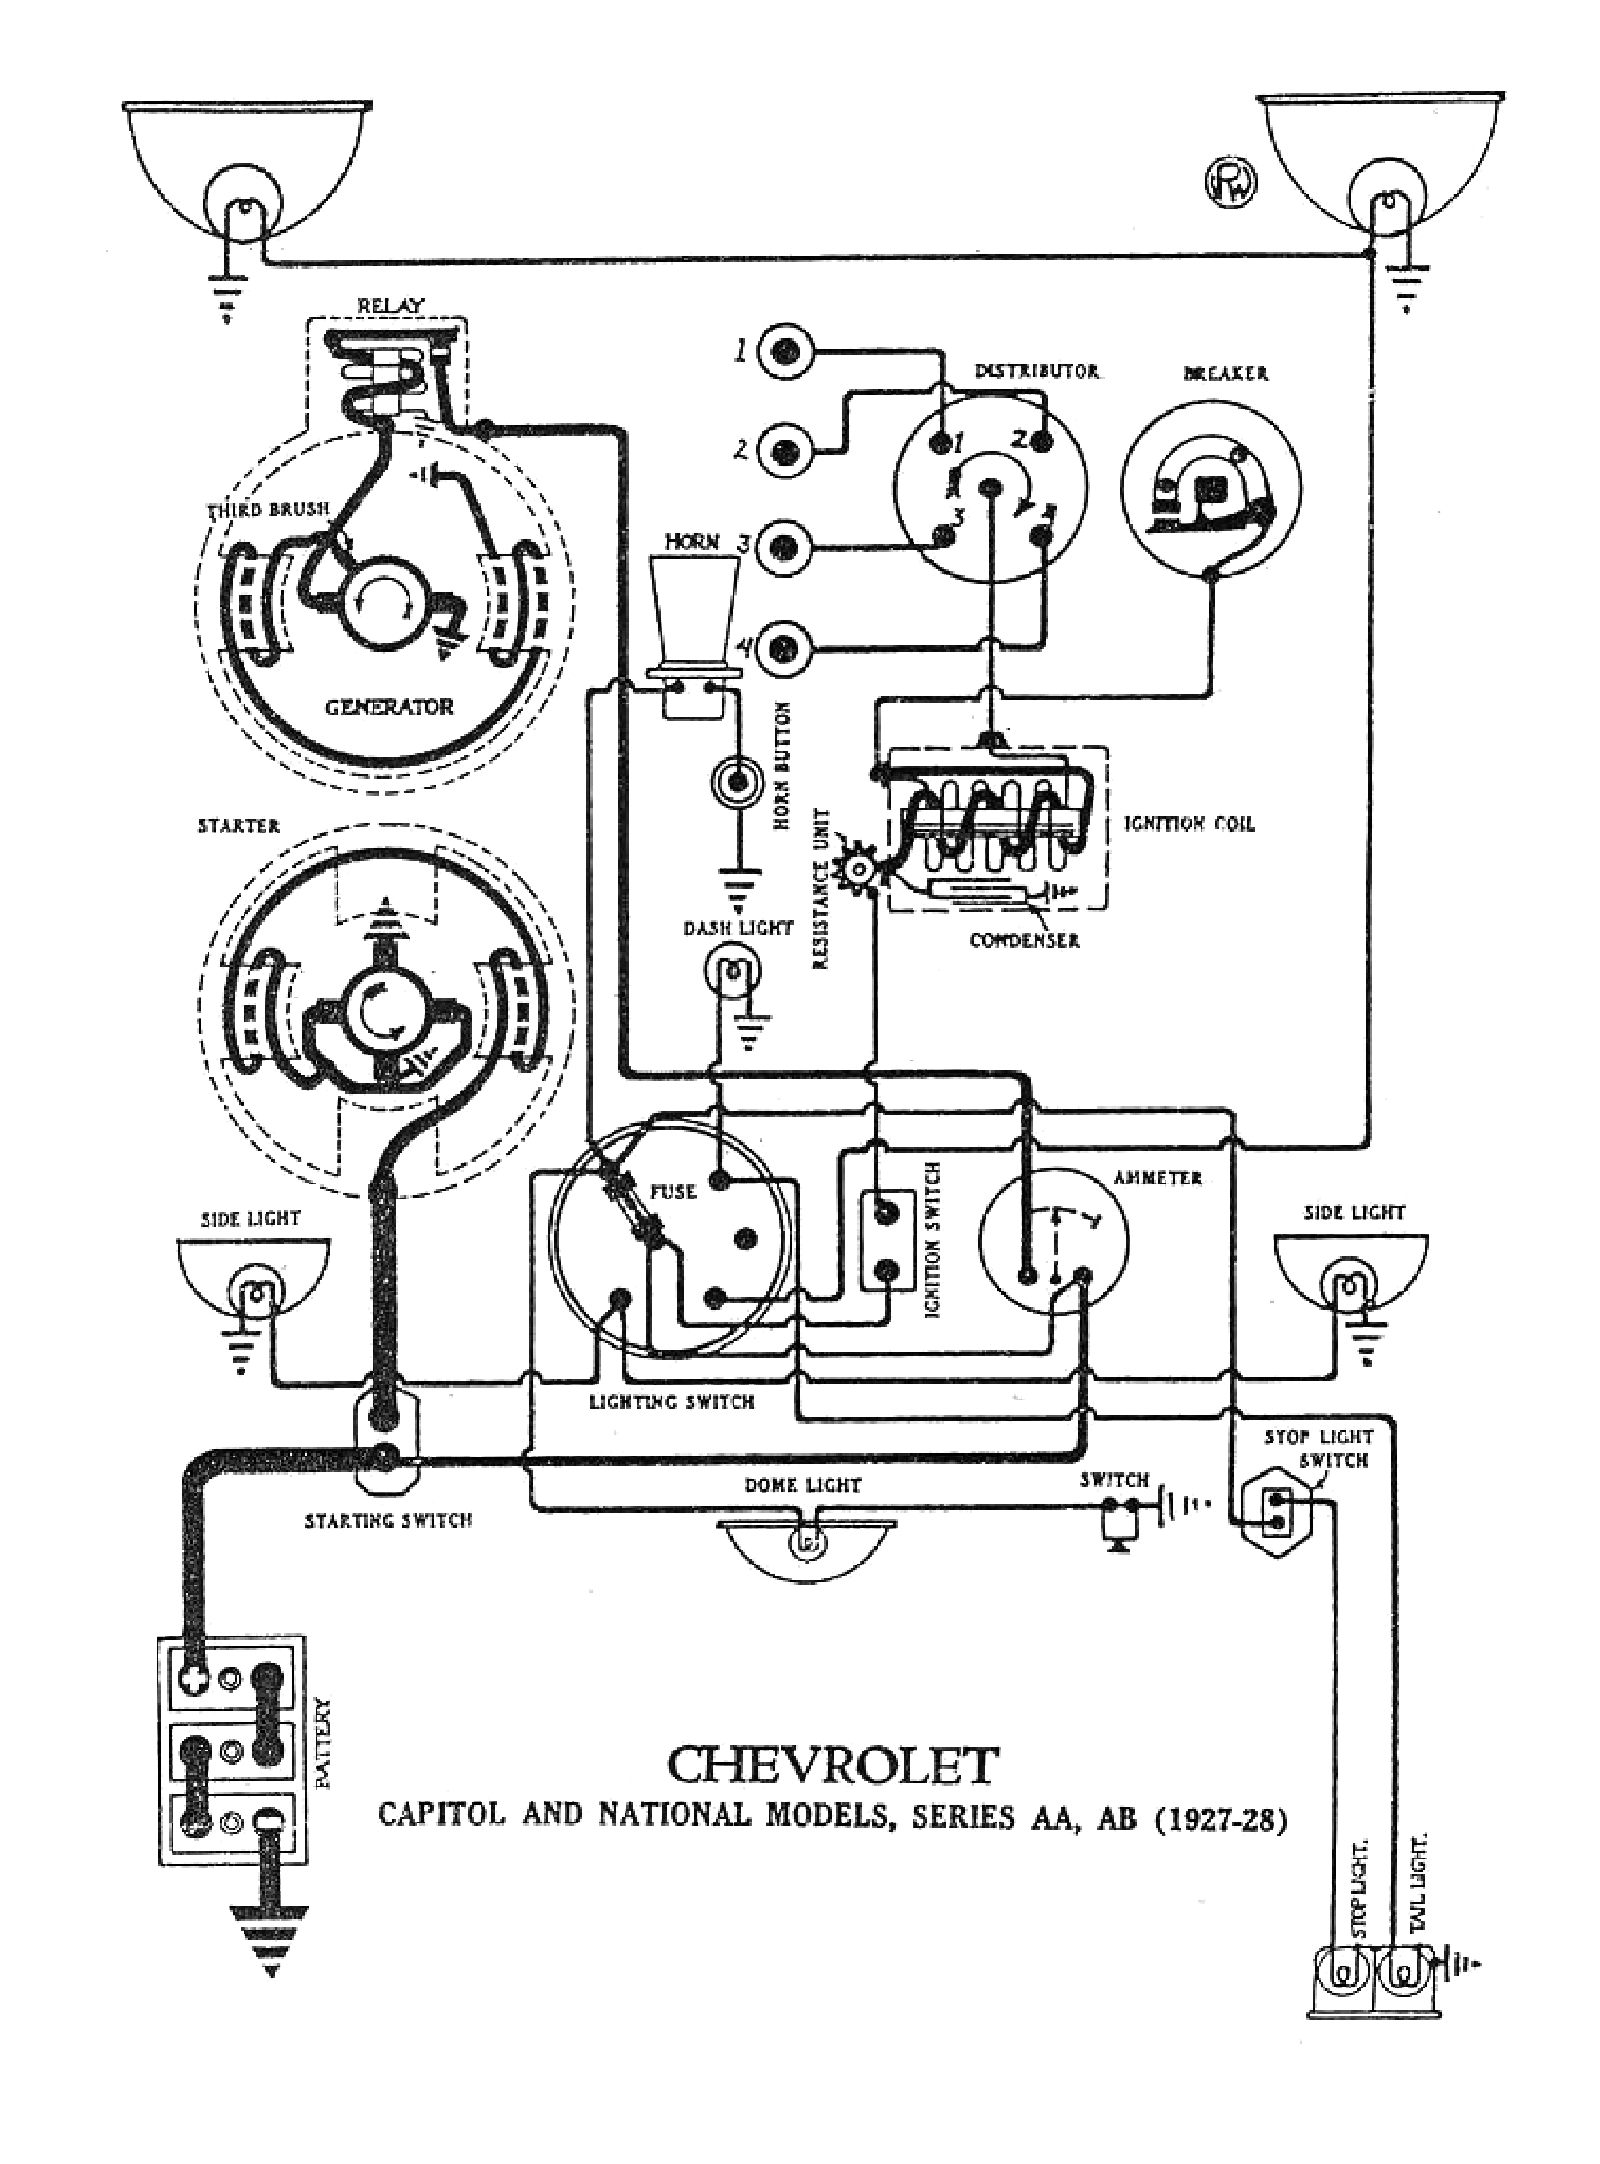 medium resolution of 1930 ford wiring diagram wiring diagramsignition circuit diagram for the 1940 47 buick all models wiring1930